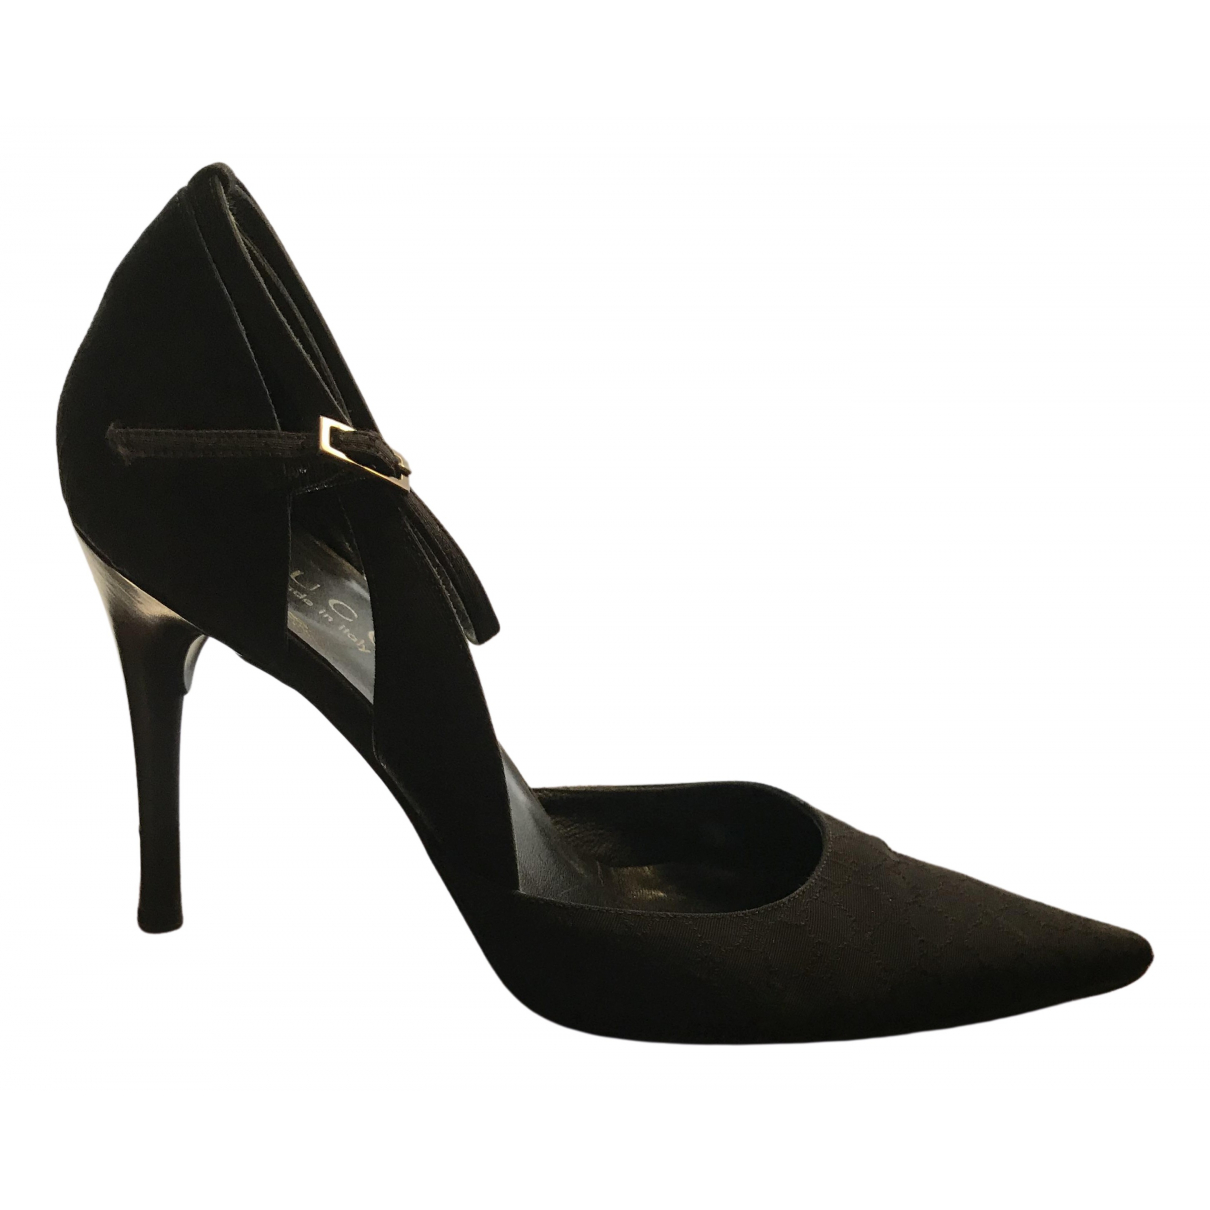 Gucci \N Black Cloth Heels for Women 36 EU